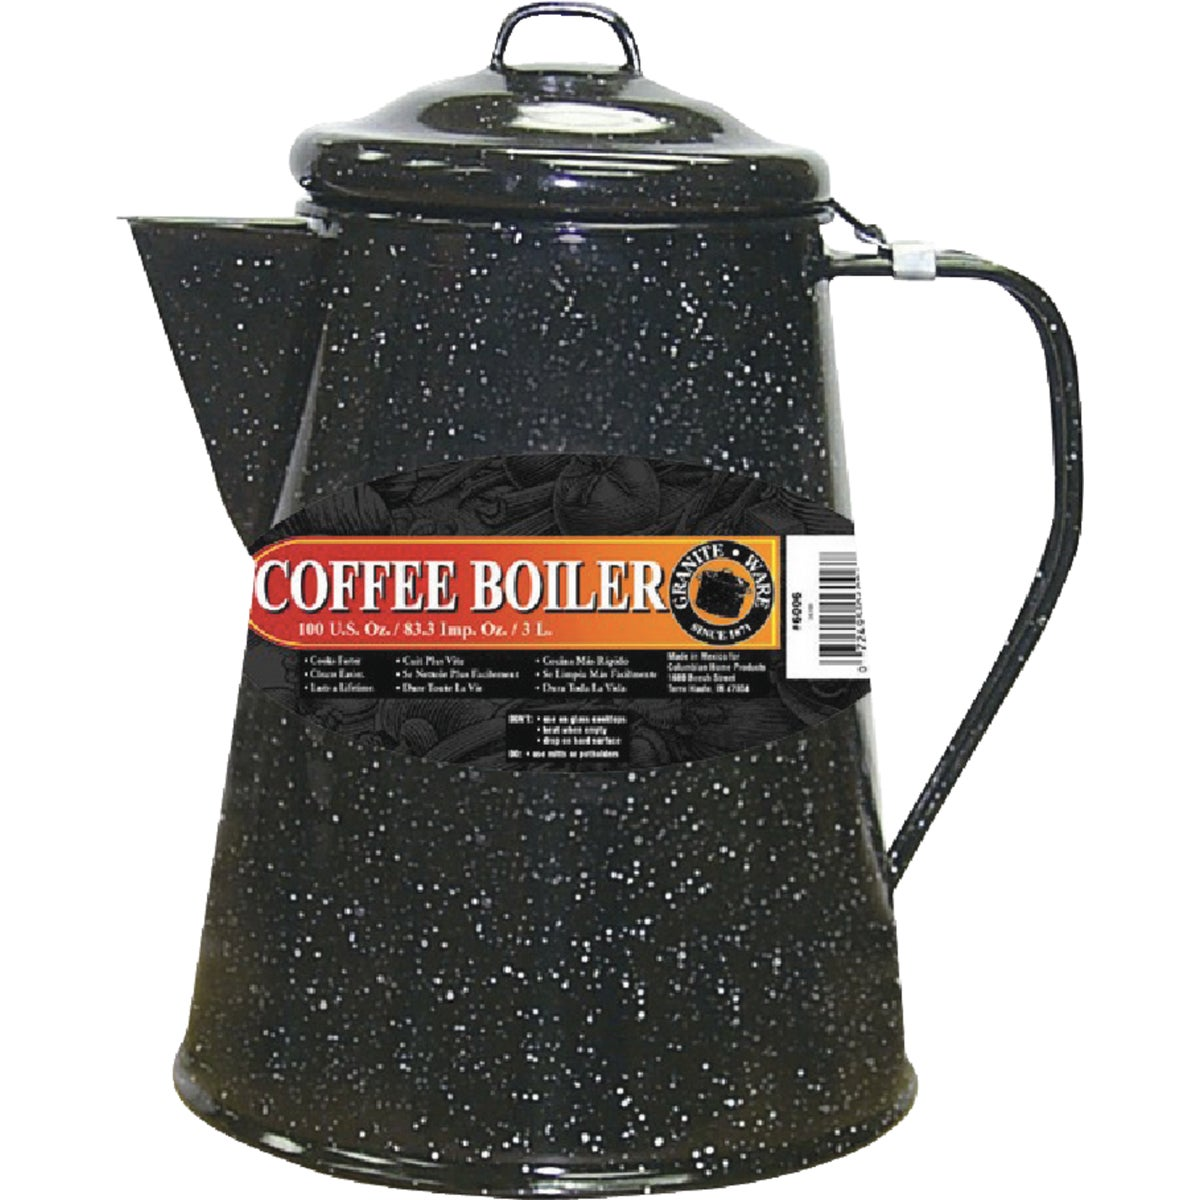 24 CUP COFFEE BOILER